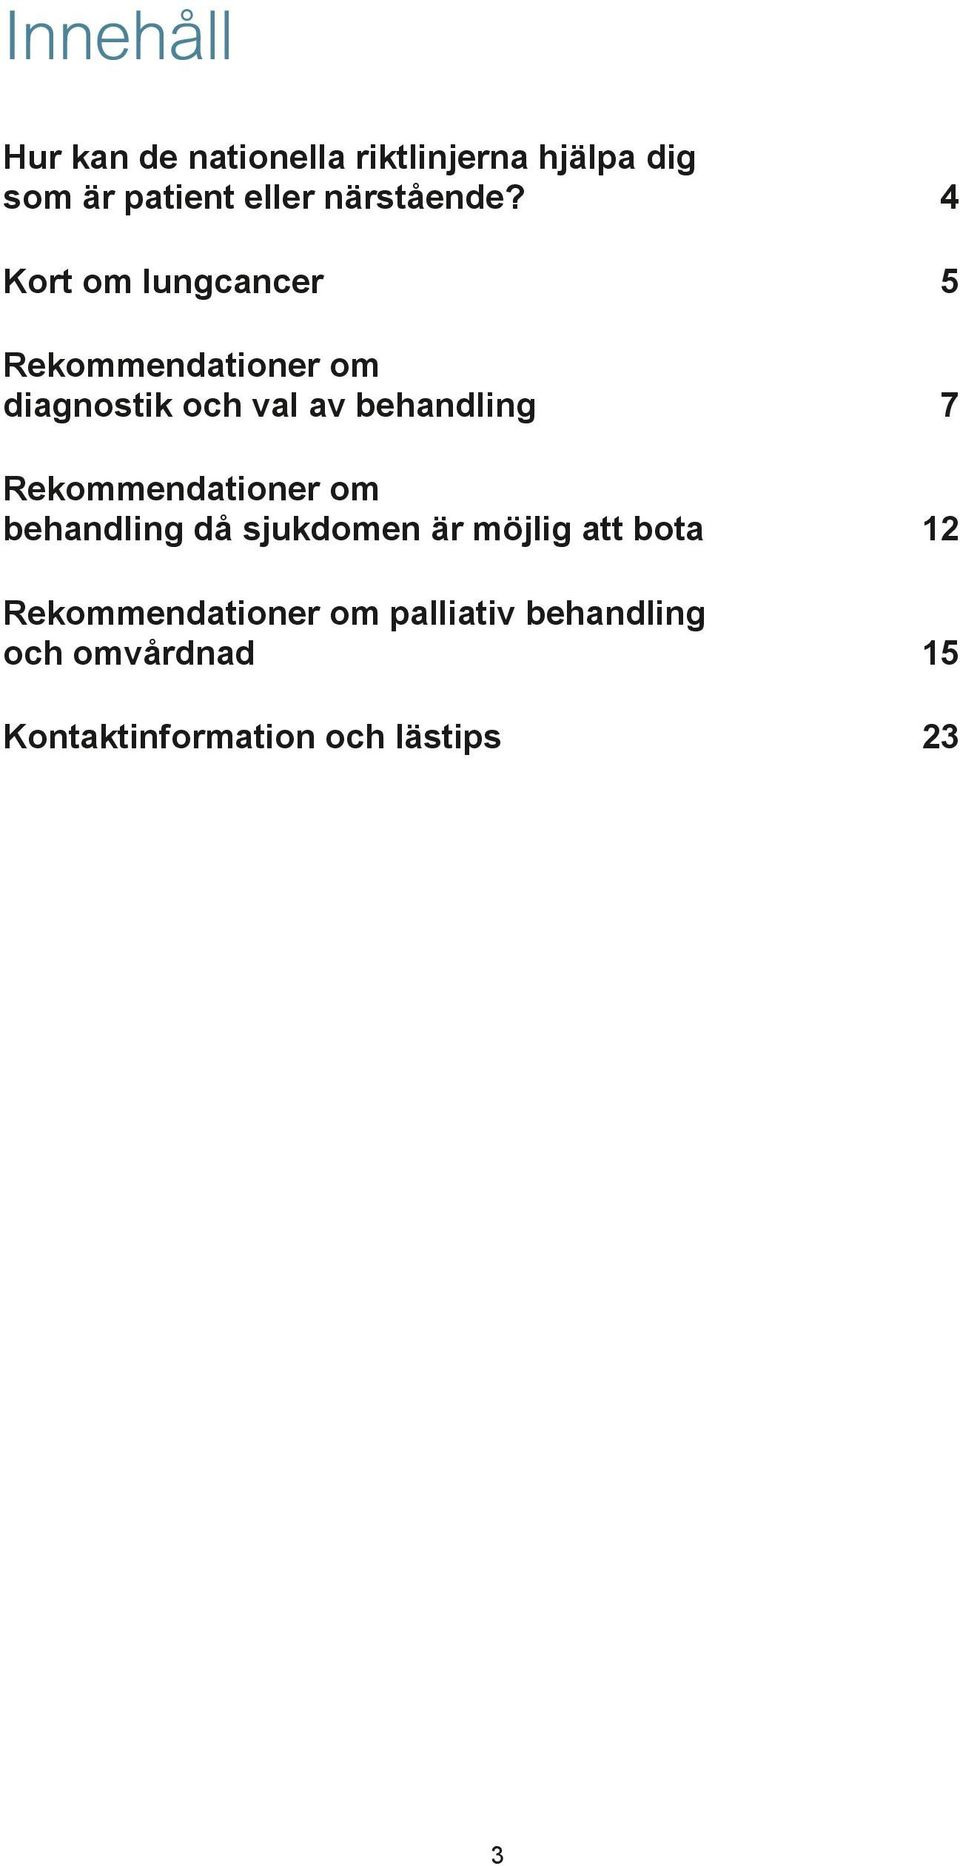 4 Kort om lungcancer 5 Rekommendationer om diagnostik och val av behandling 7